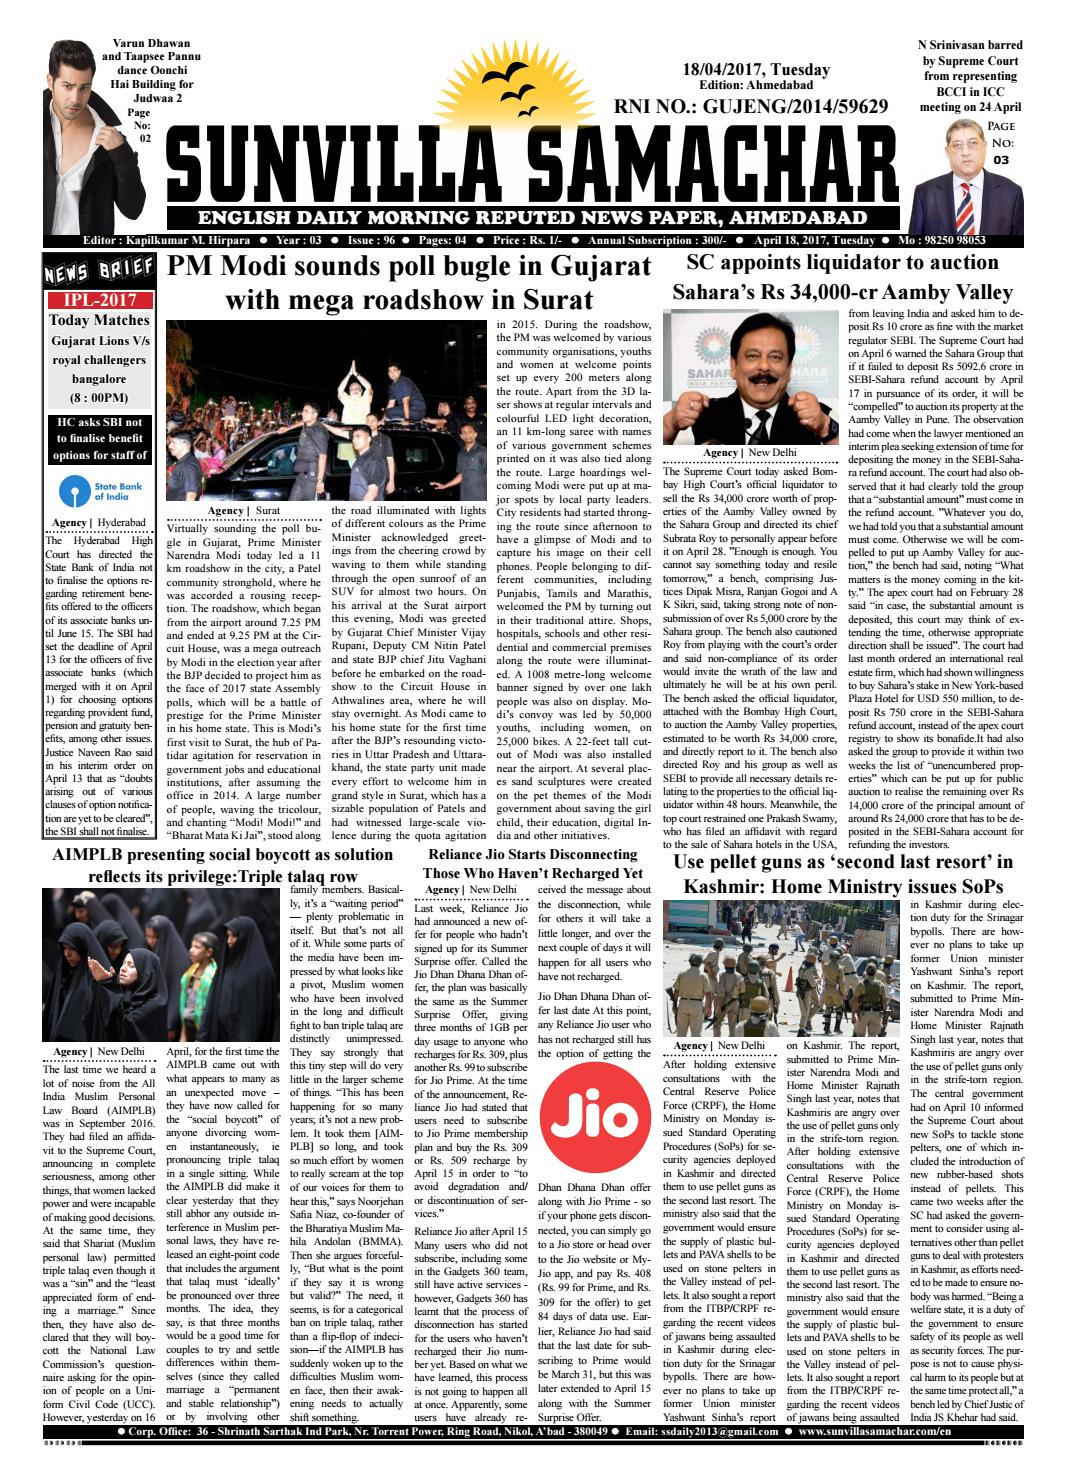 Ss eng 18 04 2017 by SUNVILLA SAMACHAR ENGLISH DAILY issuu